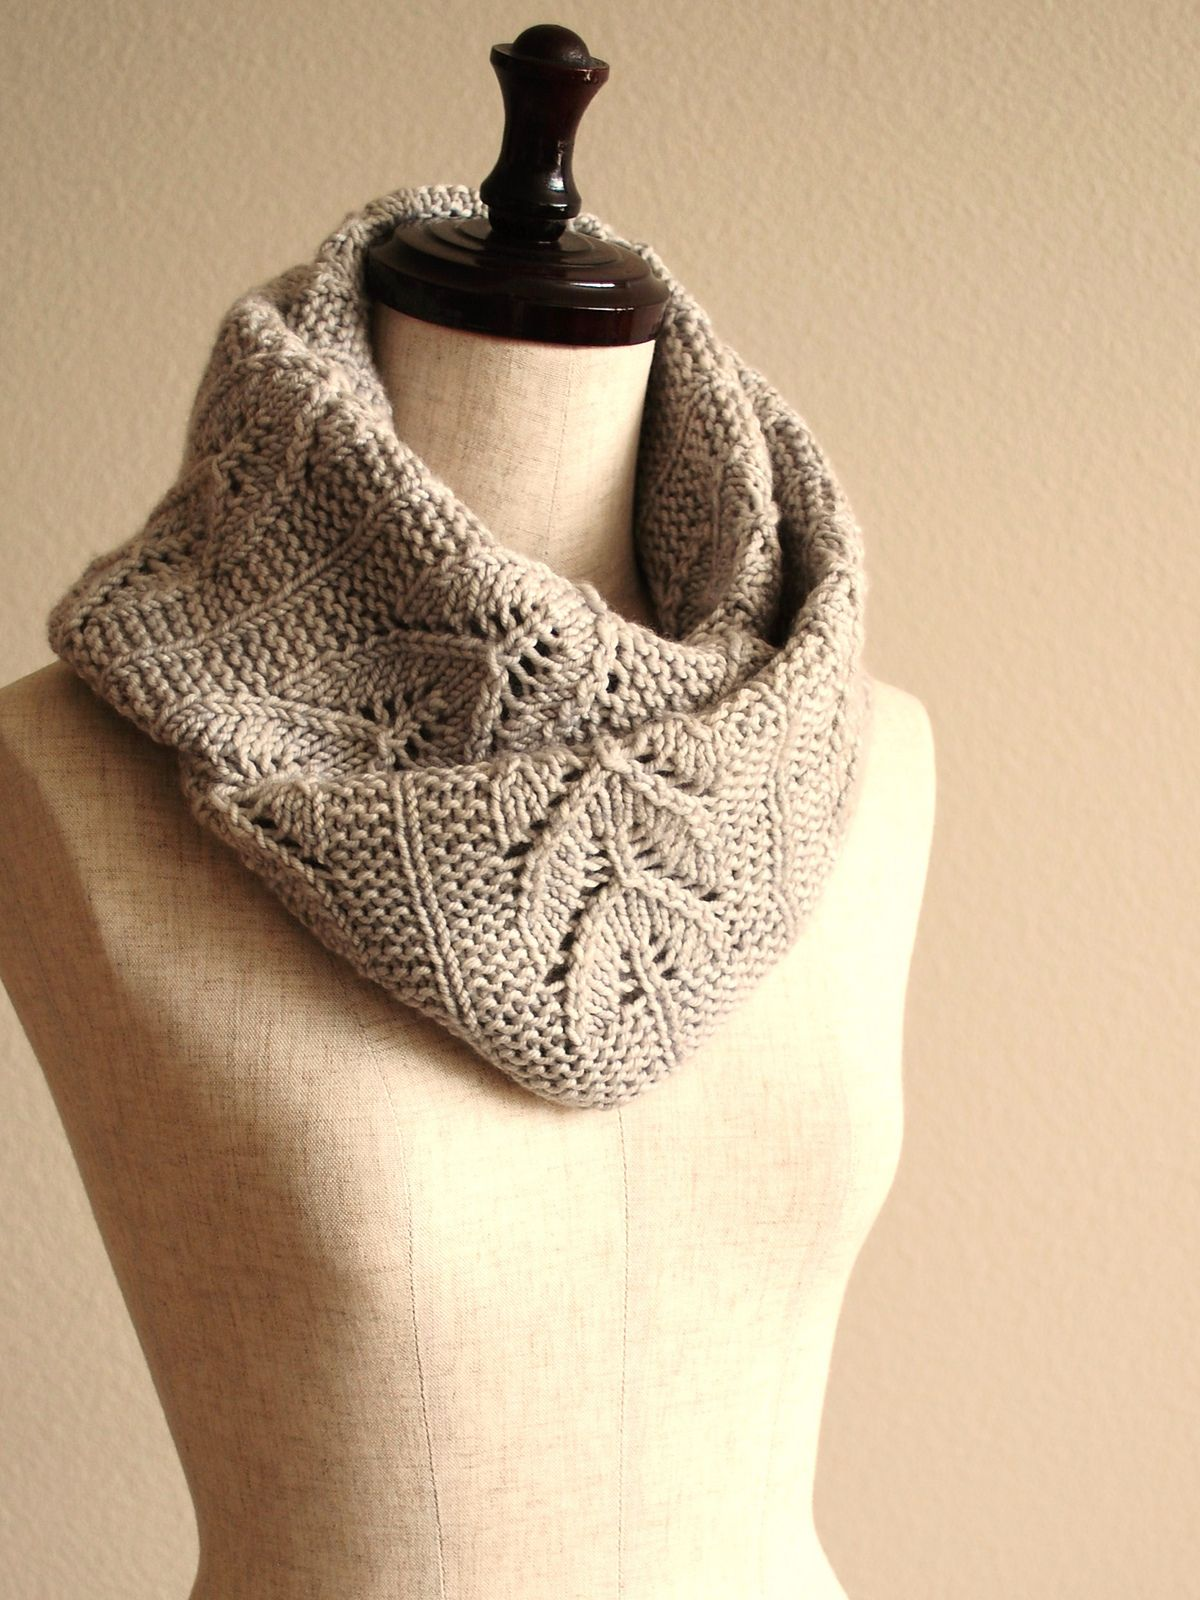 Ravelry: Lowbrow Cowl by Thao Nguyen | Projects to Try | Pinterest ...